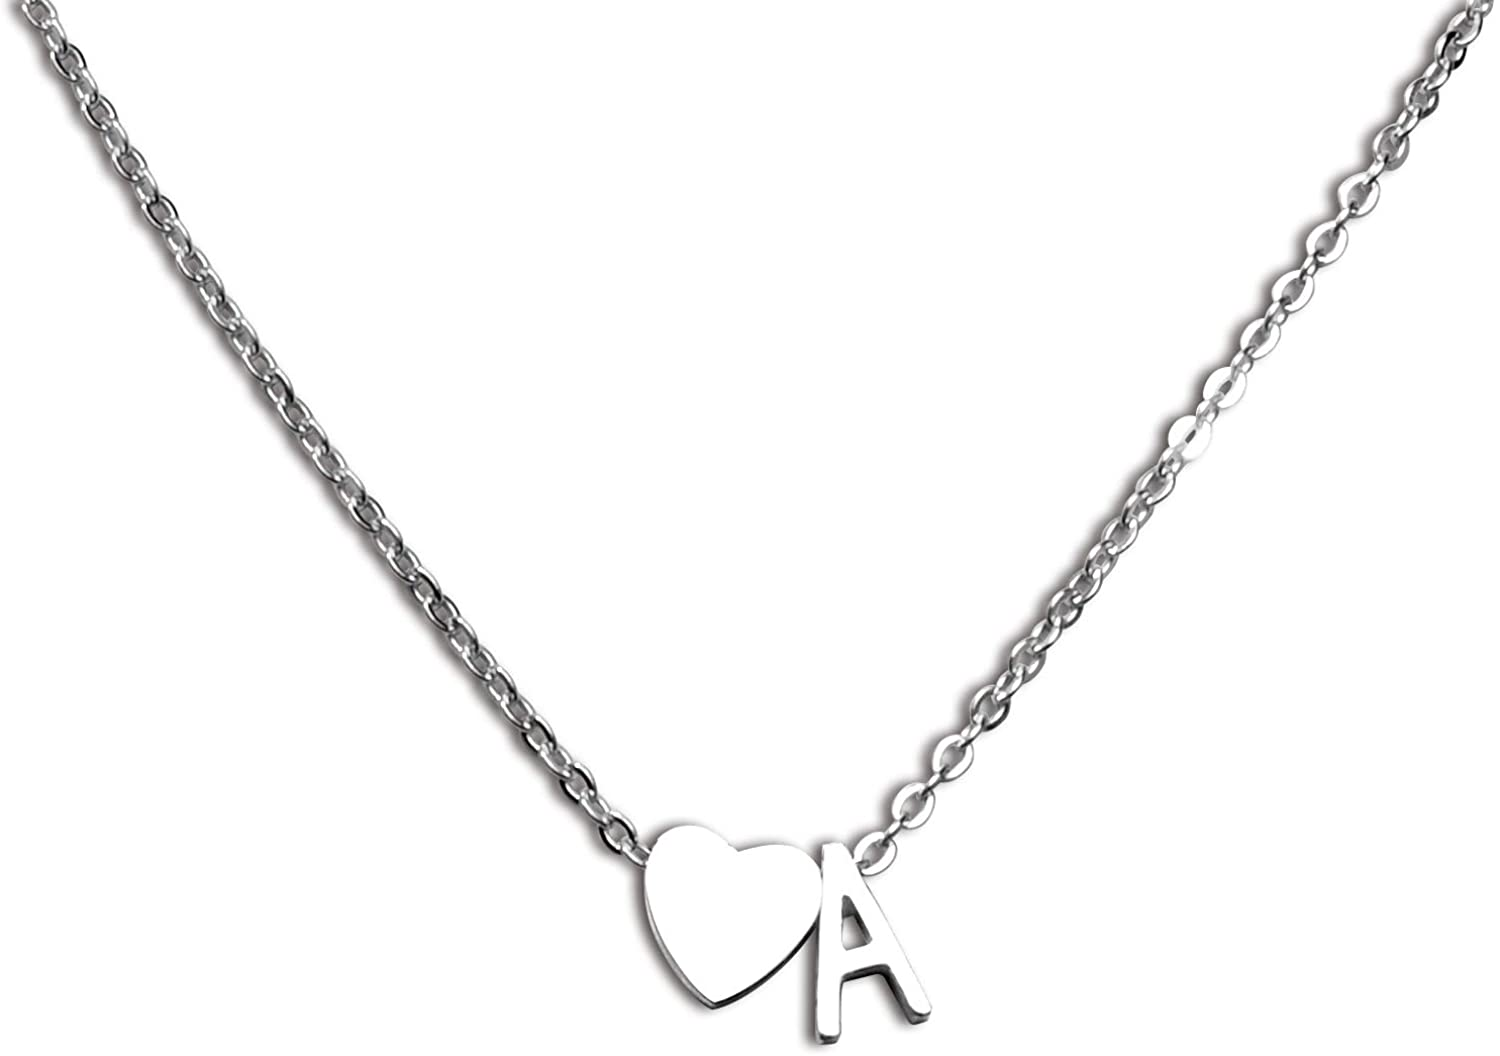 ecobuty Stainless Steel Initial Necklace for Women A-Z Initial Letter Pendant Silver Initial Necklace 26 Initial Letter Alphabet Necklace